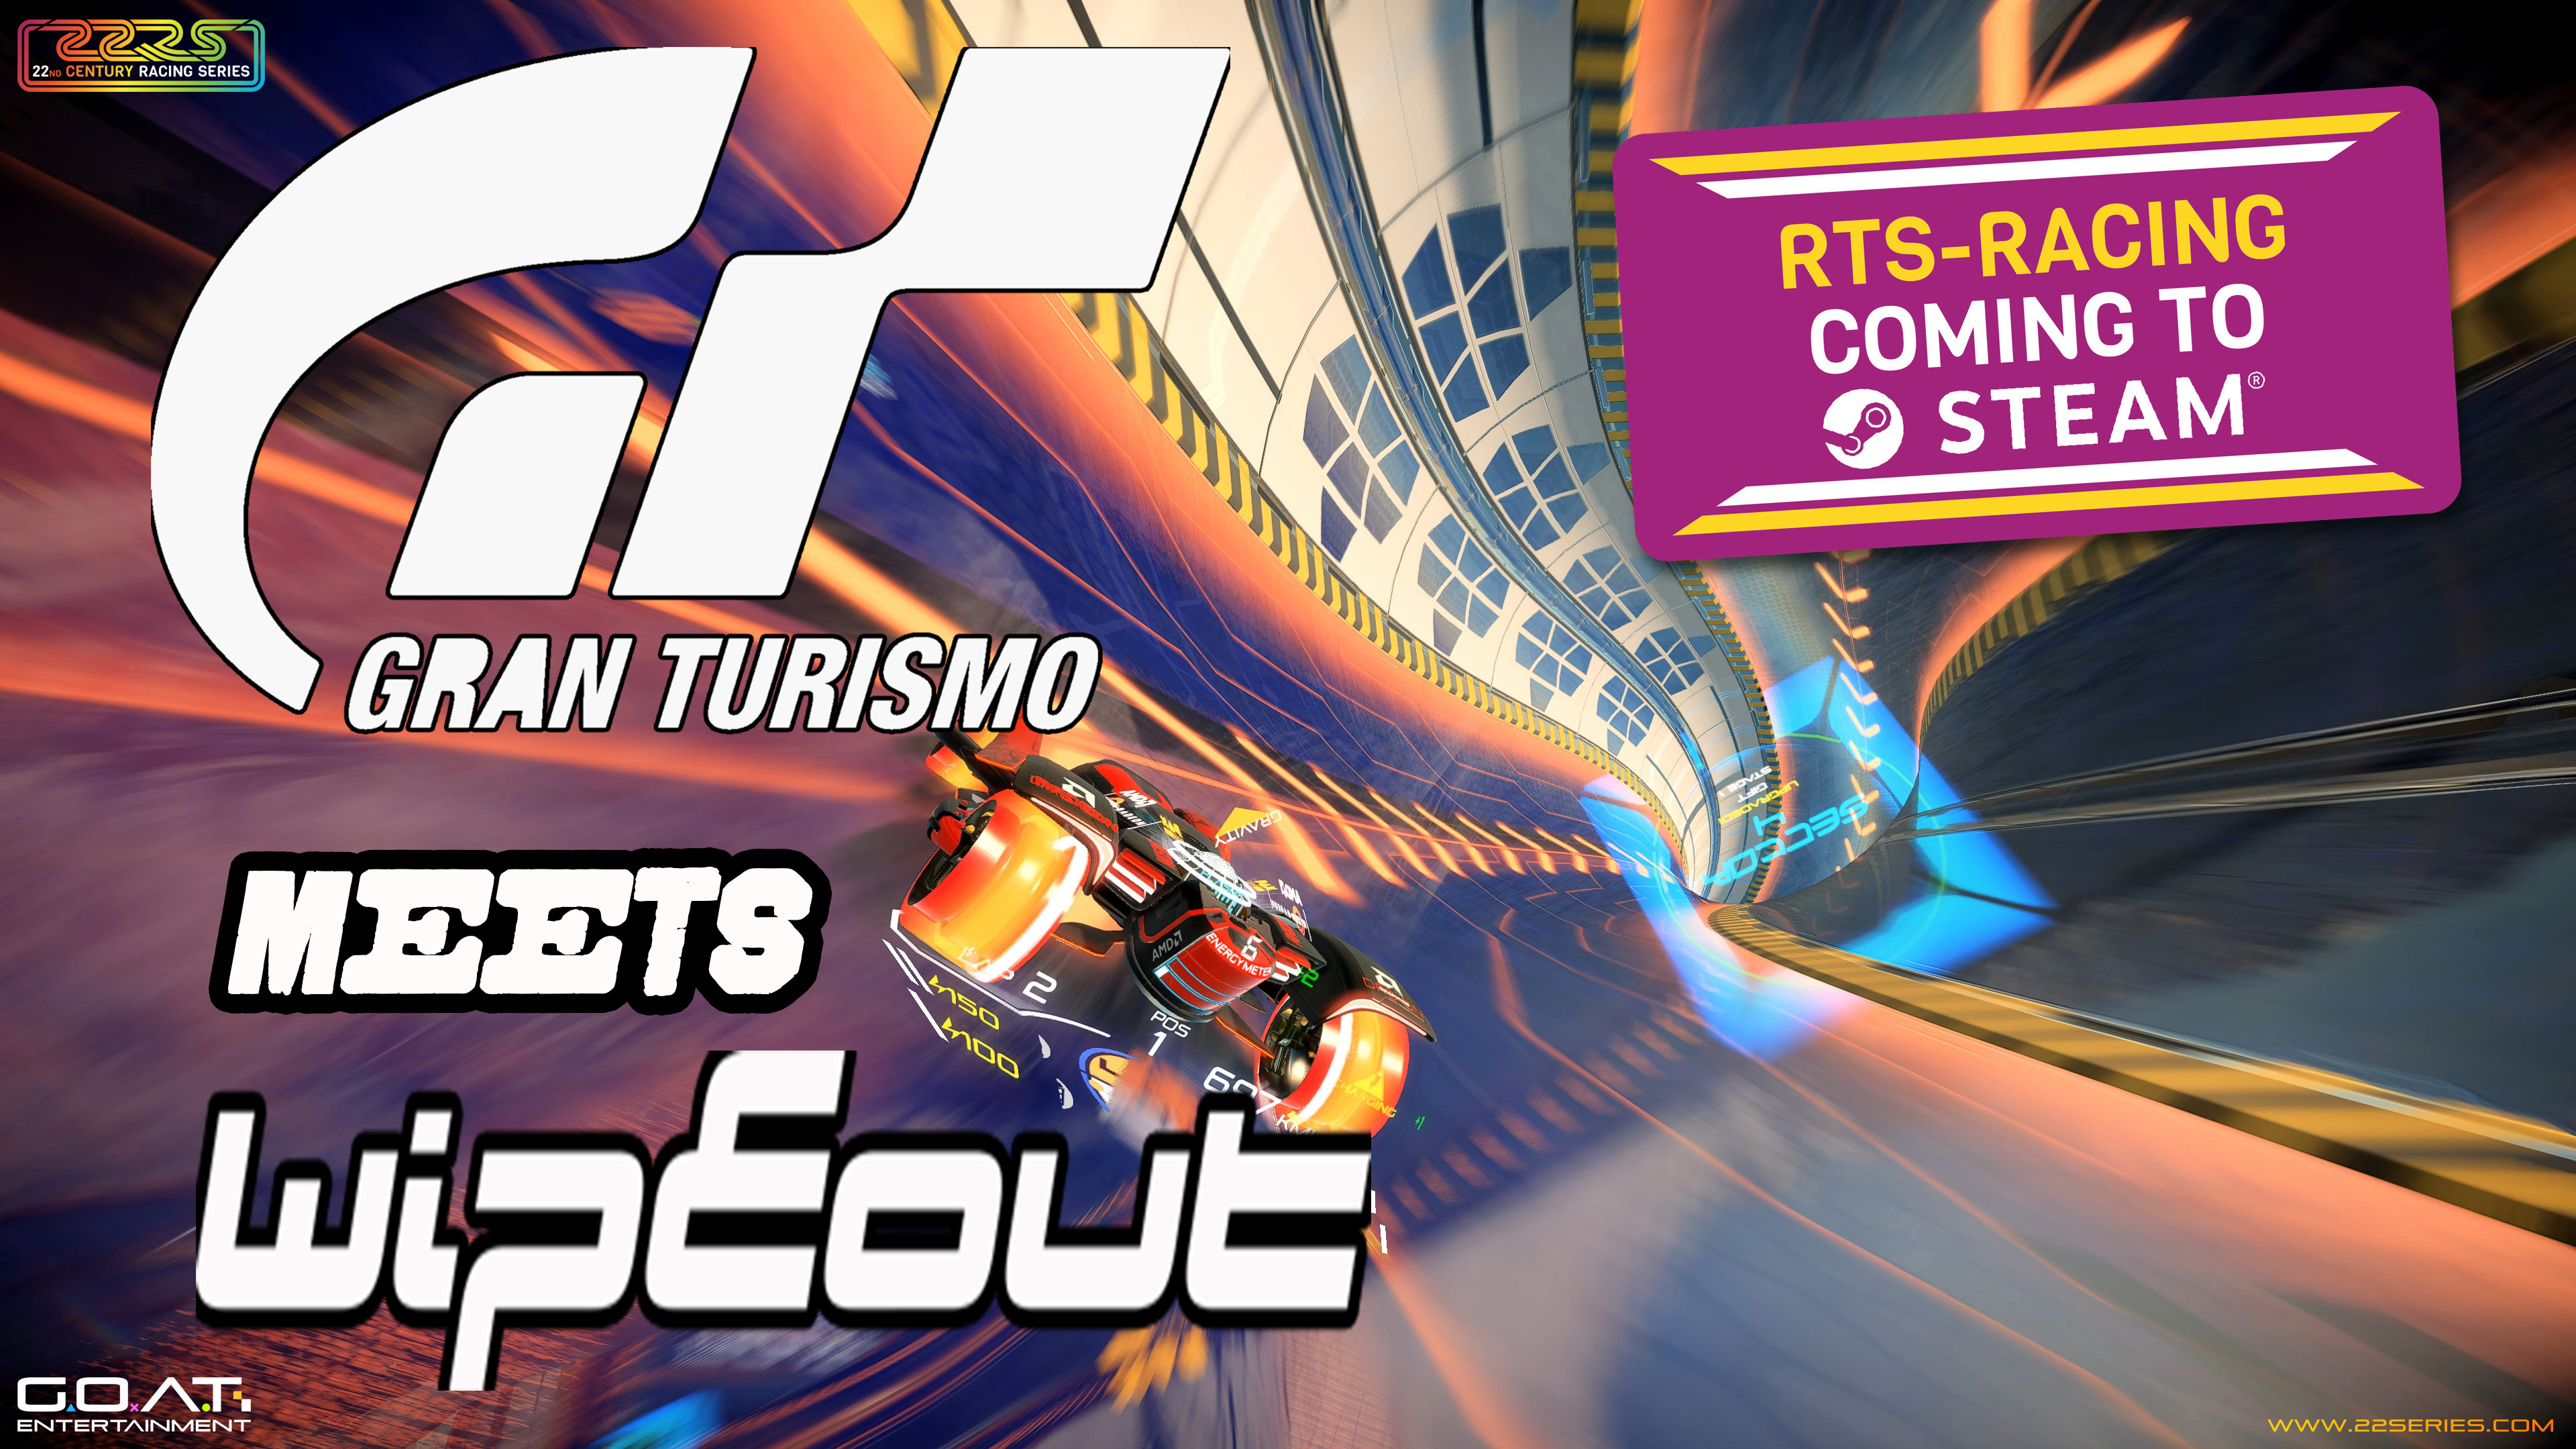 Gran Turismo meets Wipeout